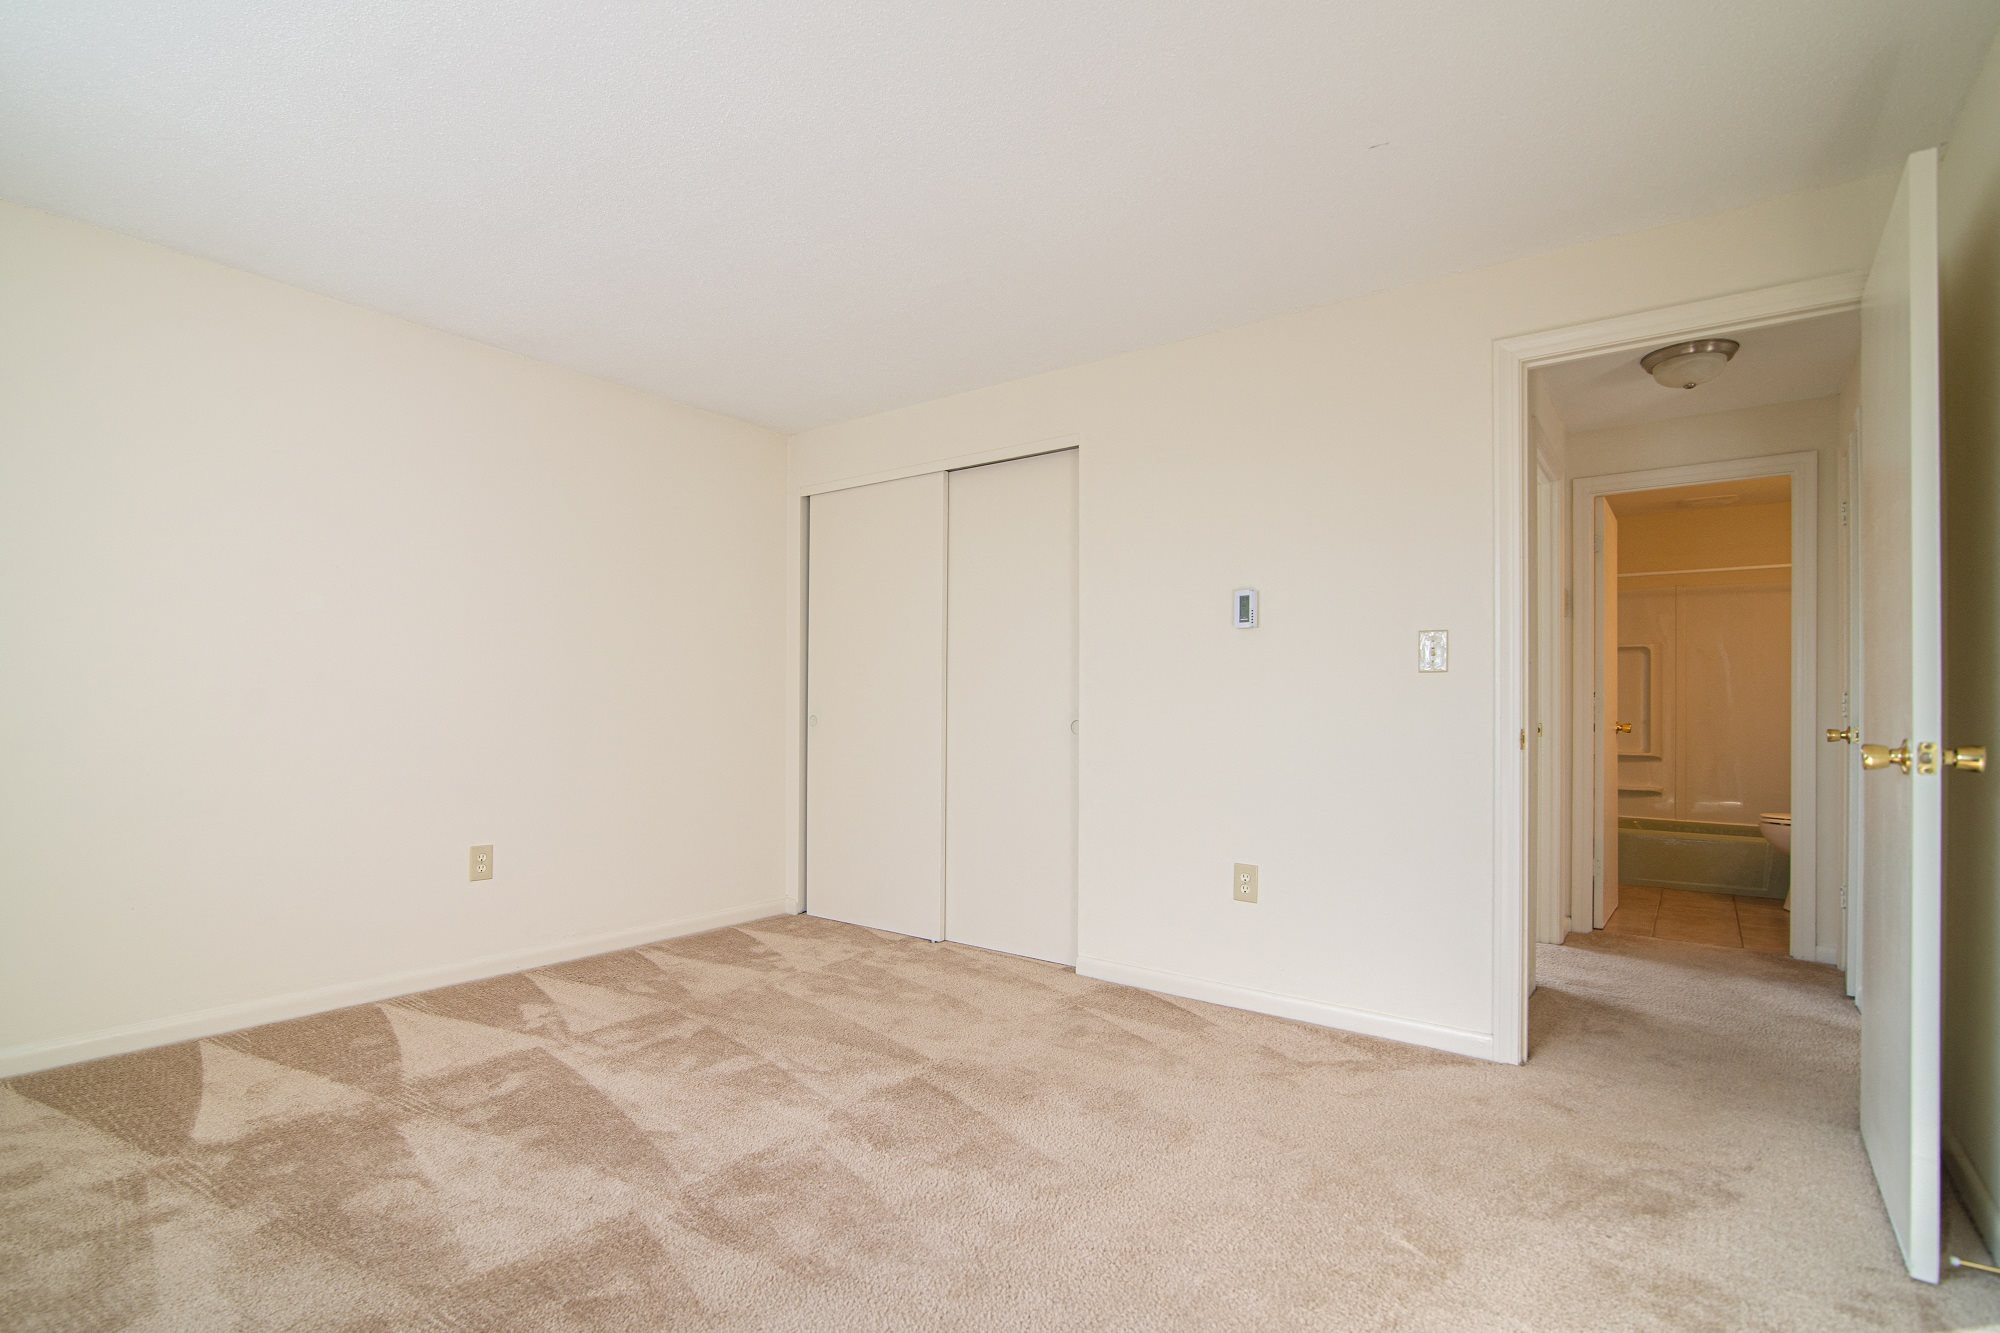 Lowell, MA Student Apartments - Studio -1-2 Beds - Photos ...